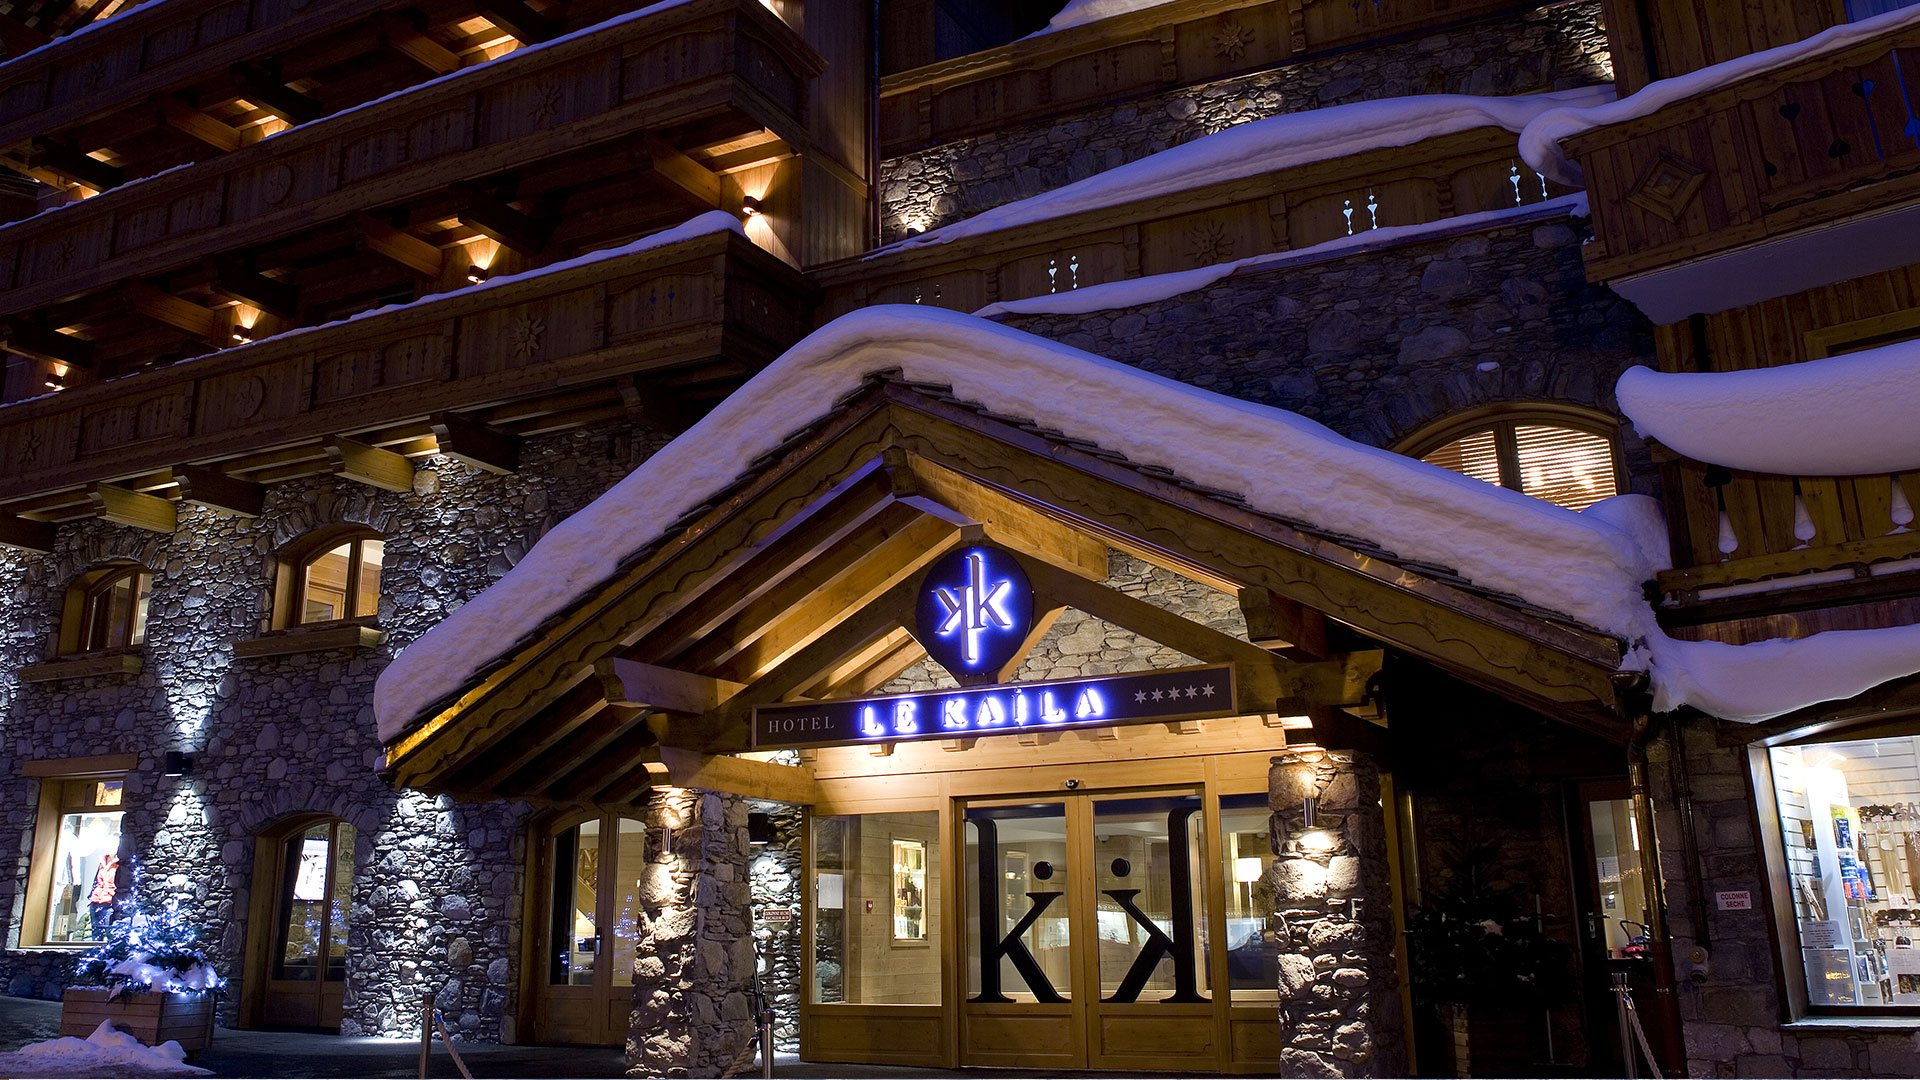 Meribel Hotels - Le Kaïla